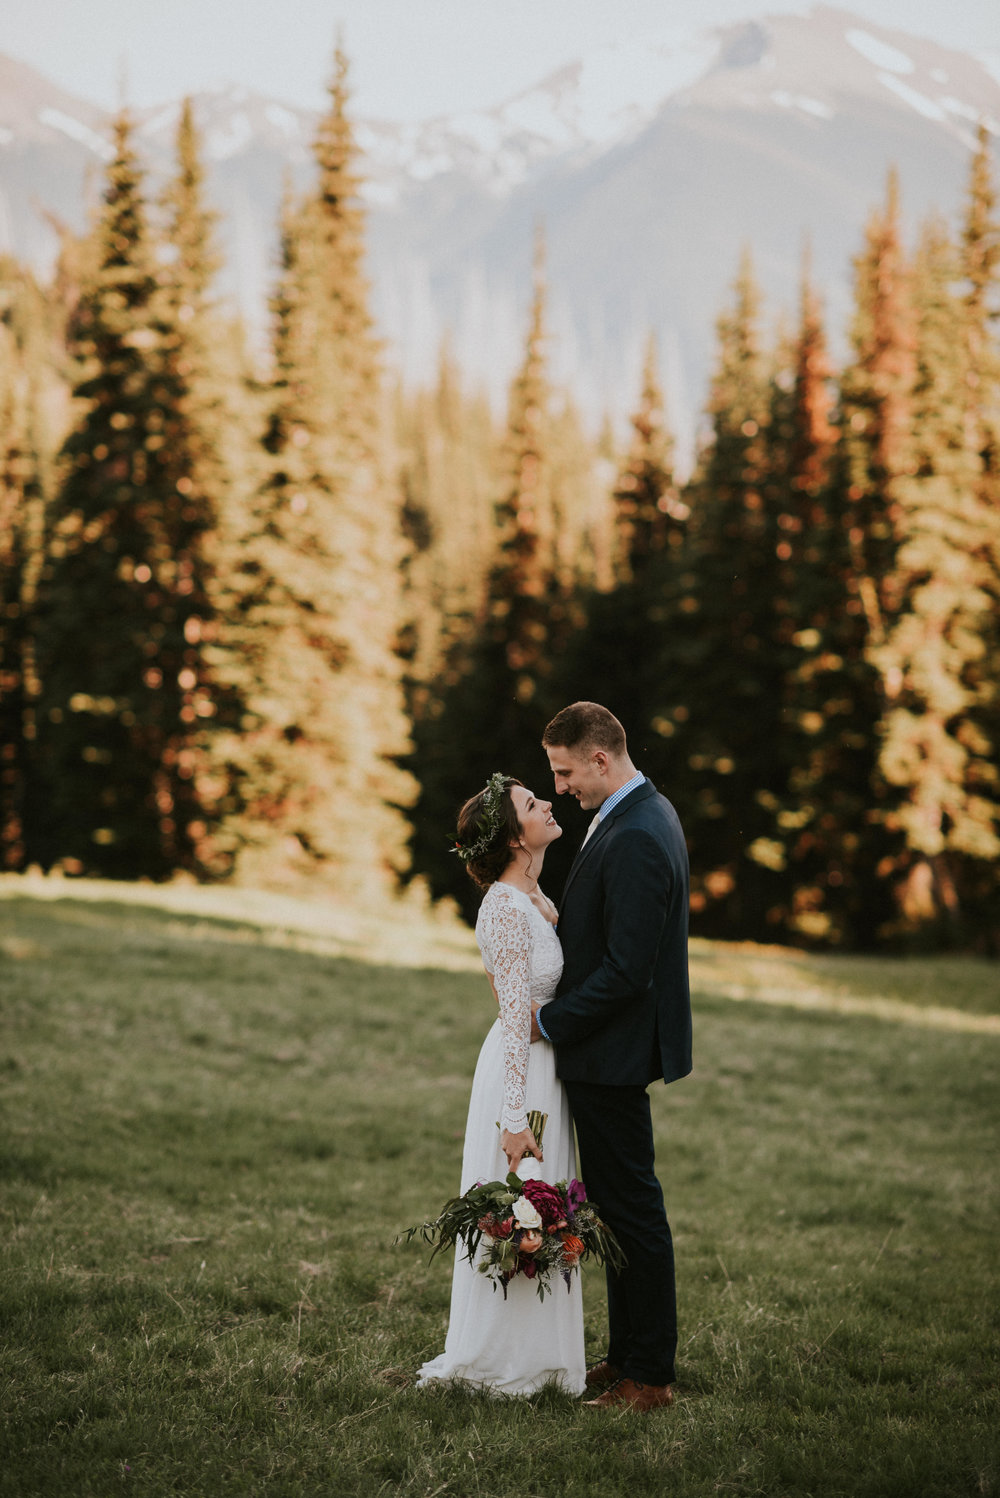 Kamra Fuller Photography - Olympic National Park Elopement Photographer - Olympic National Forest Wedding Photographer - Port Angeles Wedding Photographer - Seattle Elopement Photographer - Hawaii Wedding Photographer - Seattle Wedding Photographer - Intimate Wedding Photographer - Moody Wedding Photography - Artistic Wedding Photographer - Deer Park Wedding Photographer - Las Vegas Wedding Photographer - Kamra Fuller Intimate Weddings and Elopements - Washington Wedding Photographer - Portland Wedding Photographer - Portland Elopement Photographer - Columbia Basin Wedding Photographer - Adventure Wedding Photographer - Adventurous Elopement Photographer - Bellevue Wedding Photographer - Redmond Wedding Photographer - West Seattle Wedding Photographer - Woodinville Wedding Photographer - Snohomish Wedding Photographer - Boise Wedding Photographer - Arizona Wedding Photographer - Salt Lake Wedding Photographer